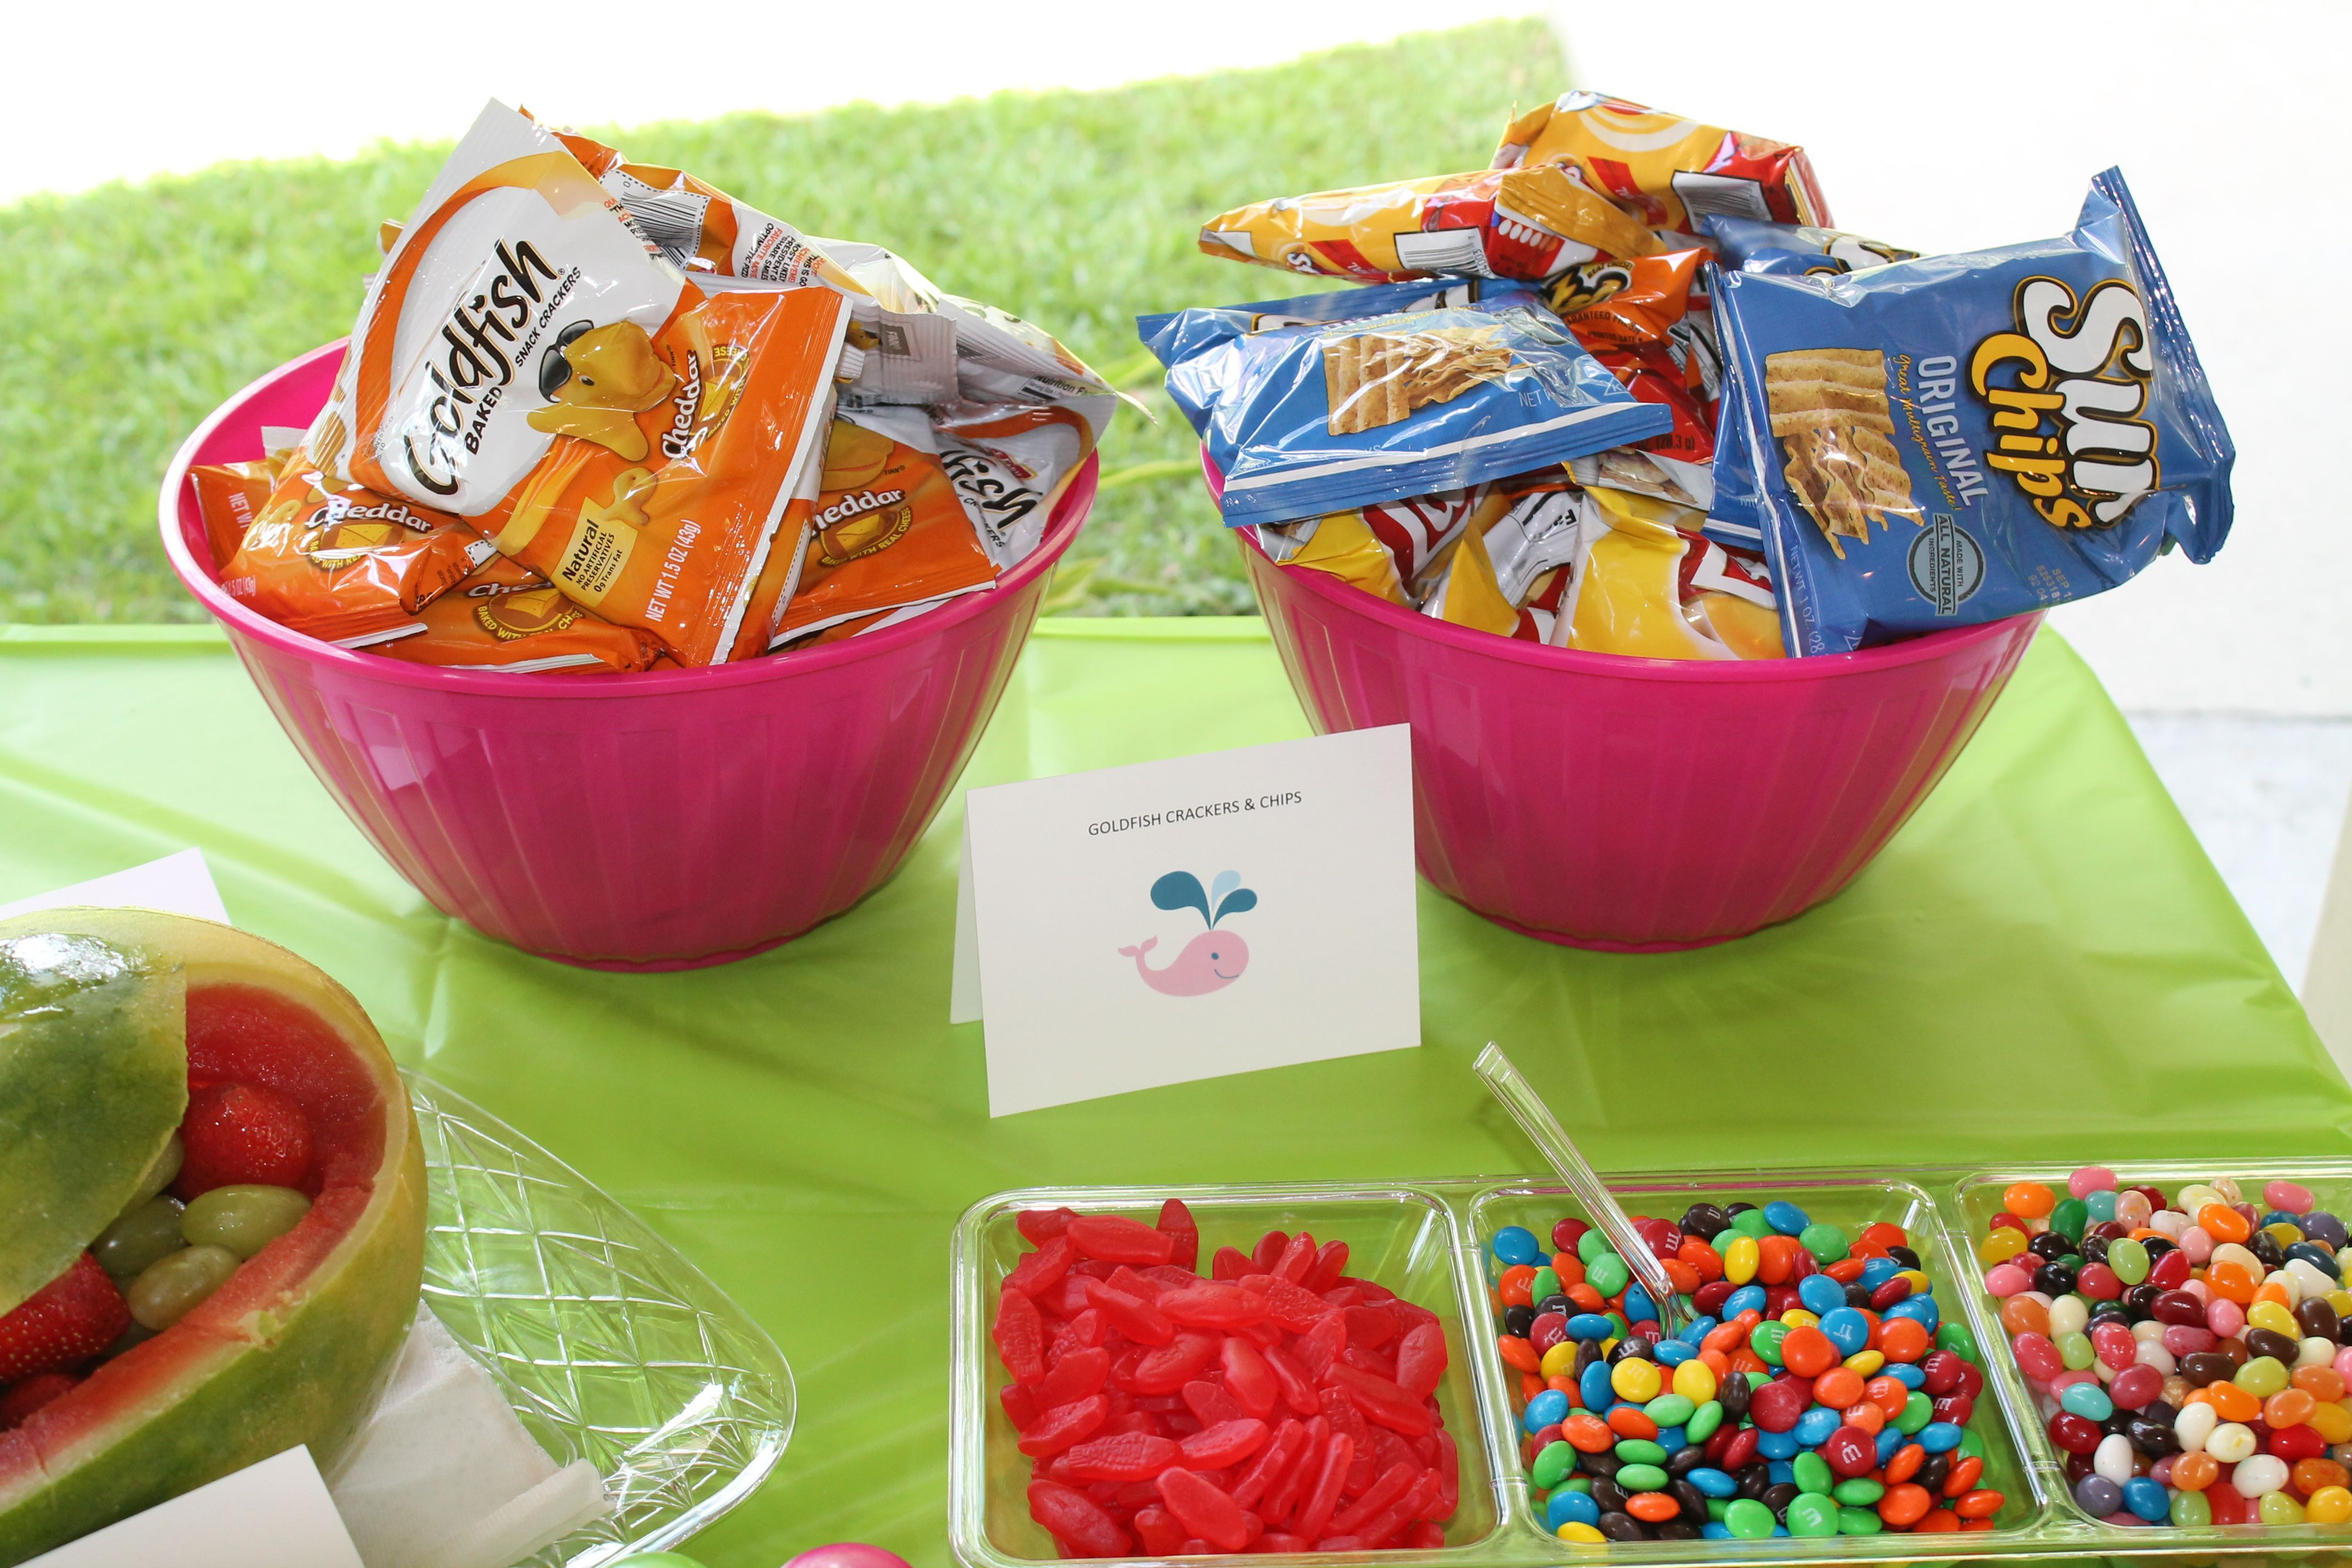 Pool Party Snack Ideas  Goldfish crackers fit the theme but the chips were more